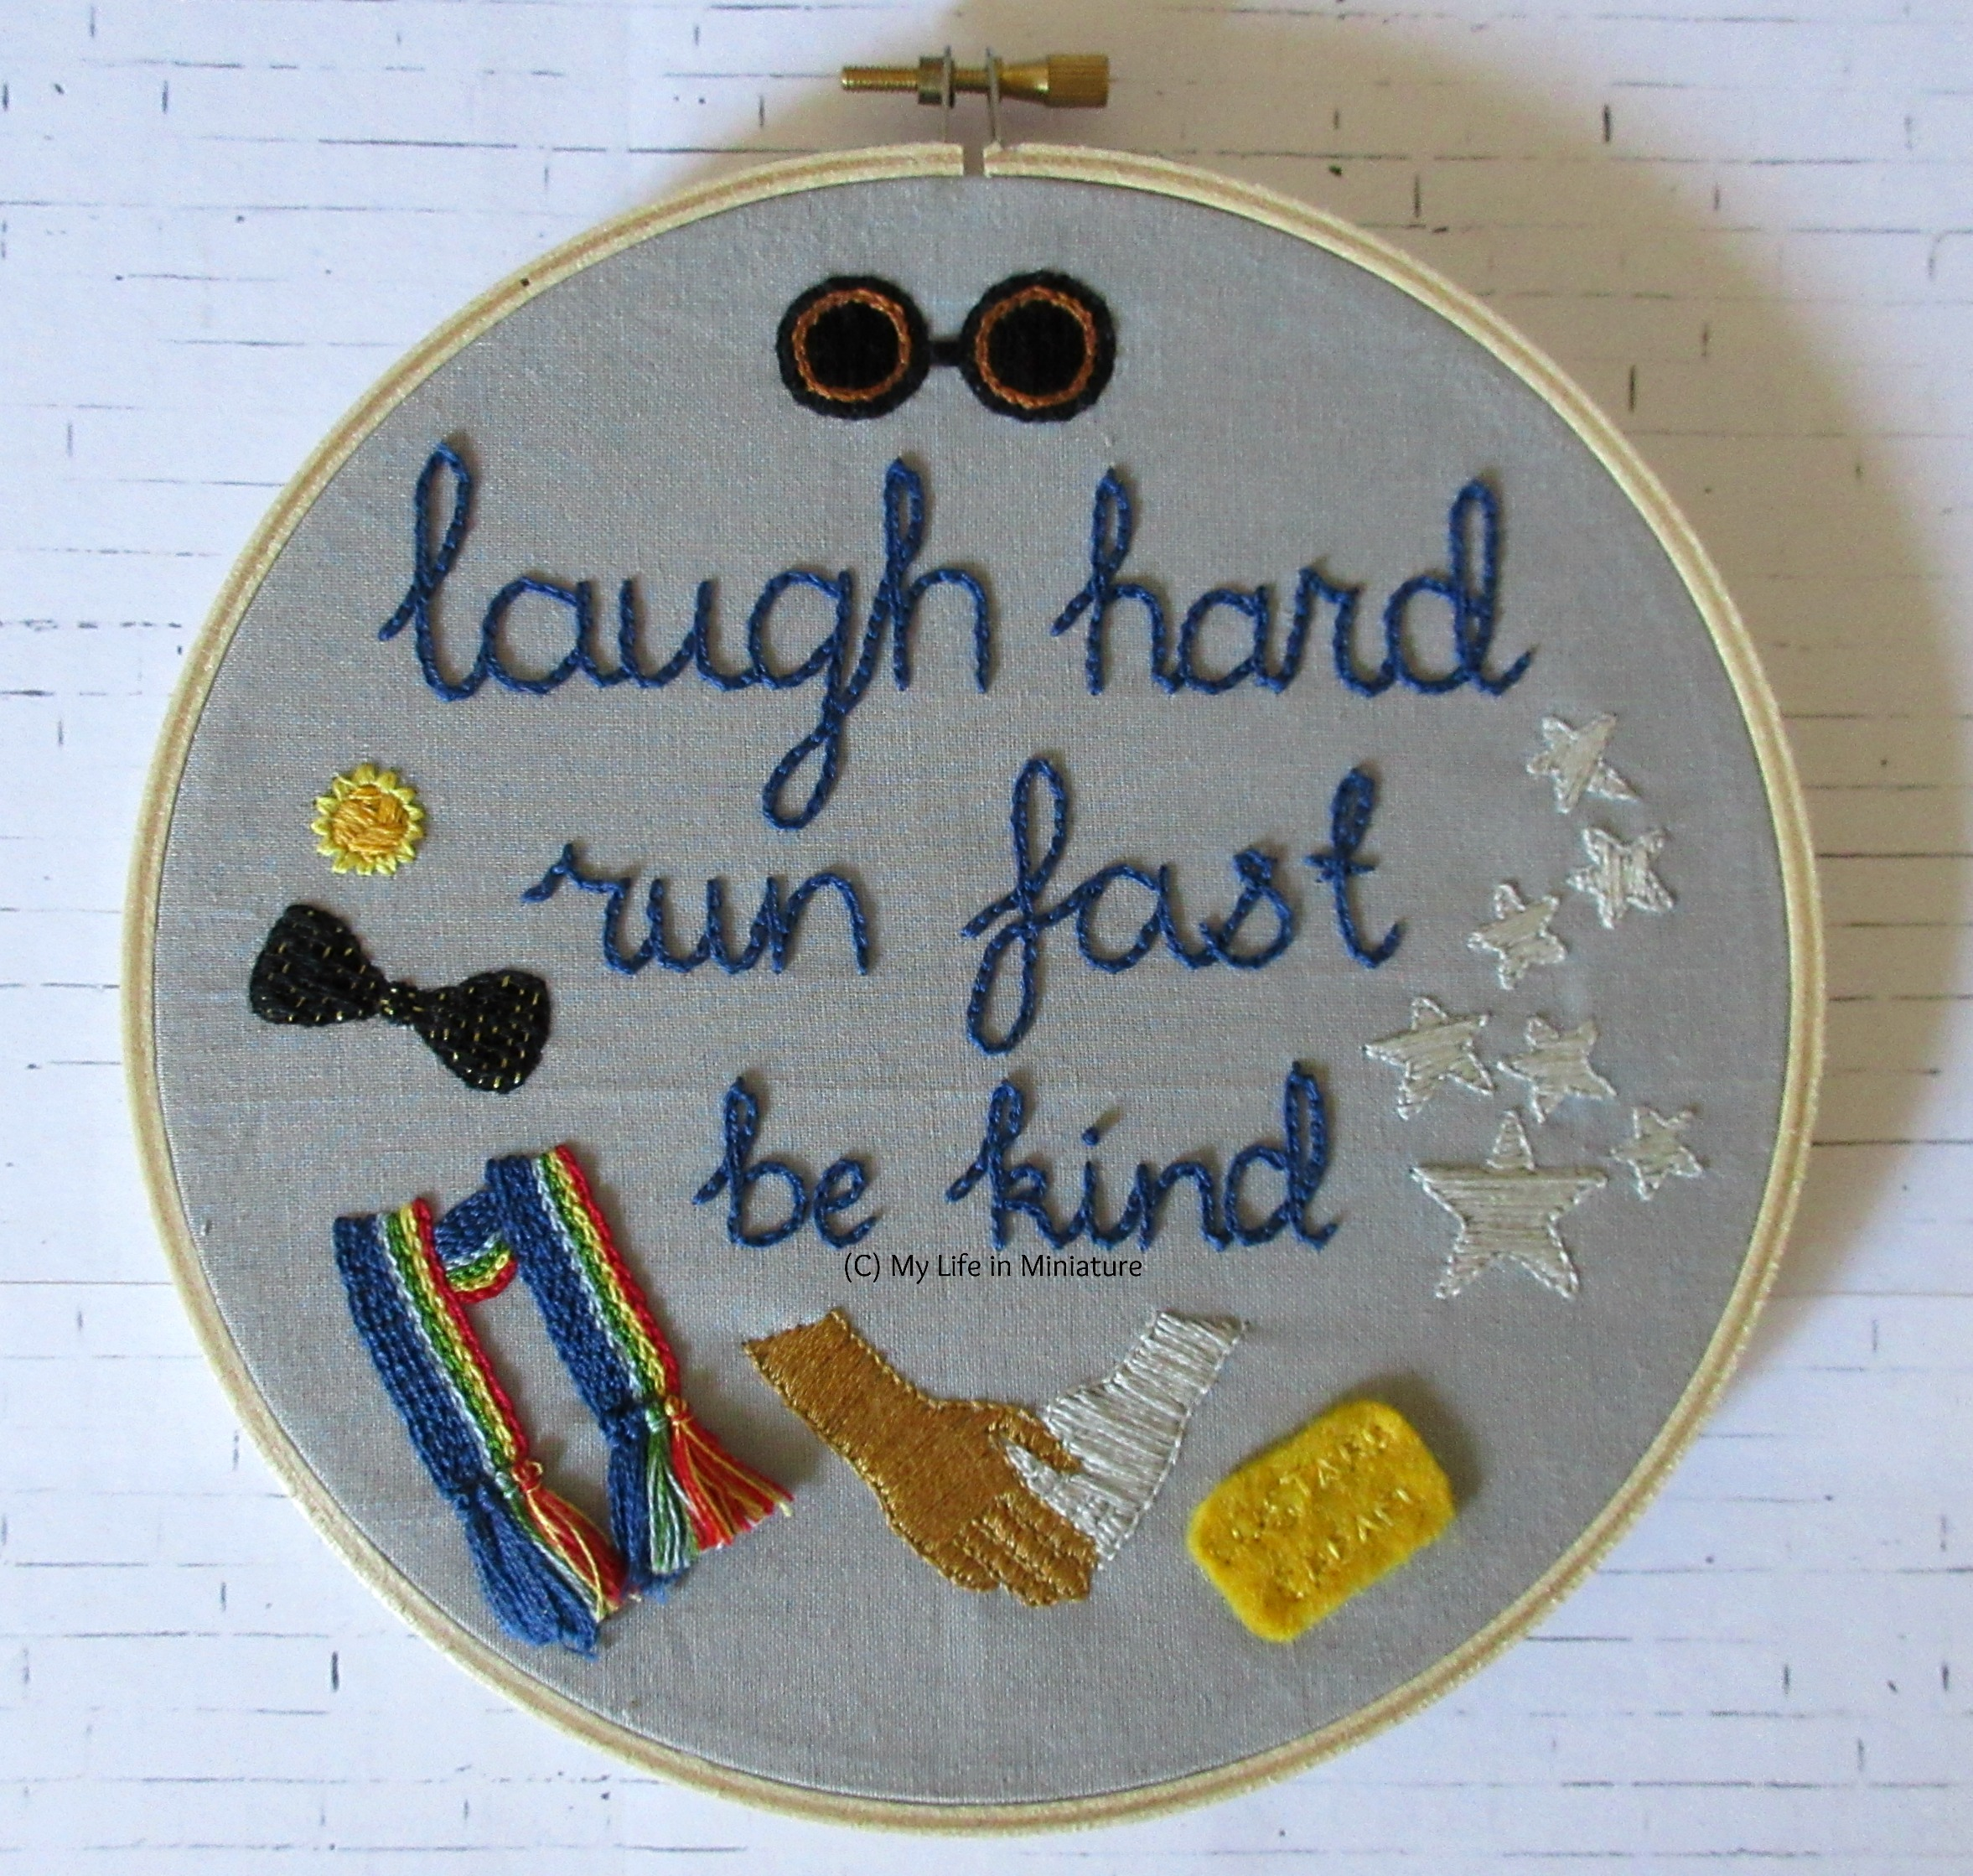 The embroidery hoop, filled with grey fabric, sits on a white brick background. The phrase 'laugh hard; run fast; be kind' is embroidered in navy blue in the middle. Around it are various symbols of the Thirteenth Doctor, including a daffodil flower, a rainbow-striped scarf, and a custard cream biscuit.